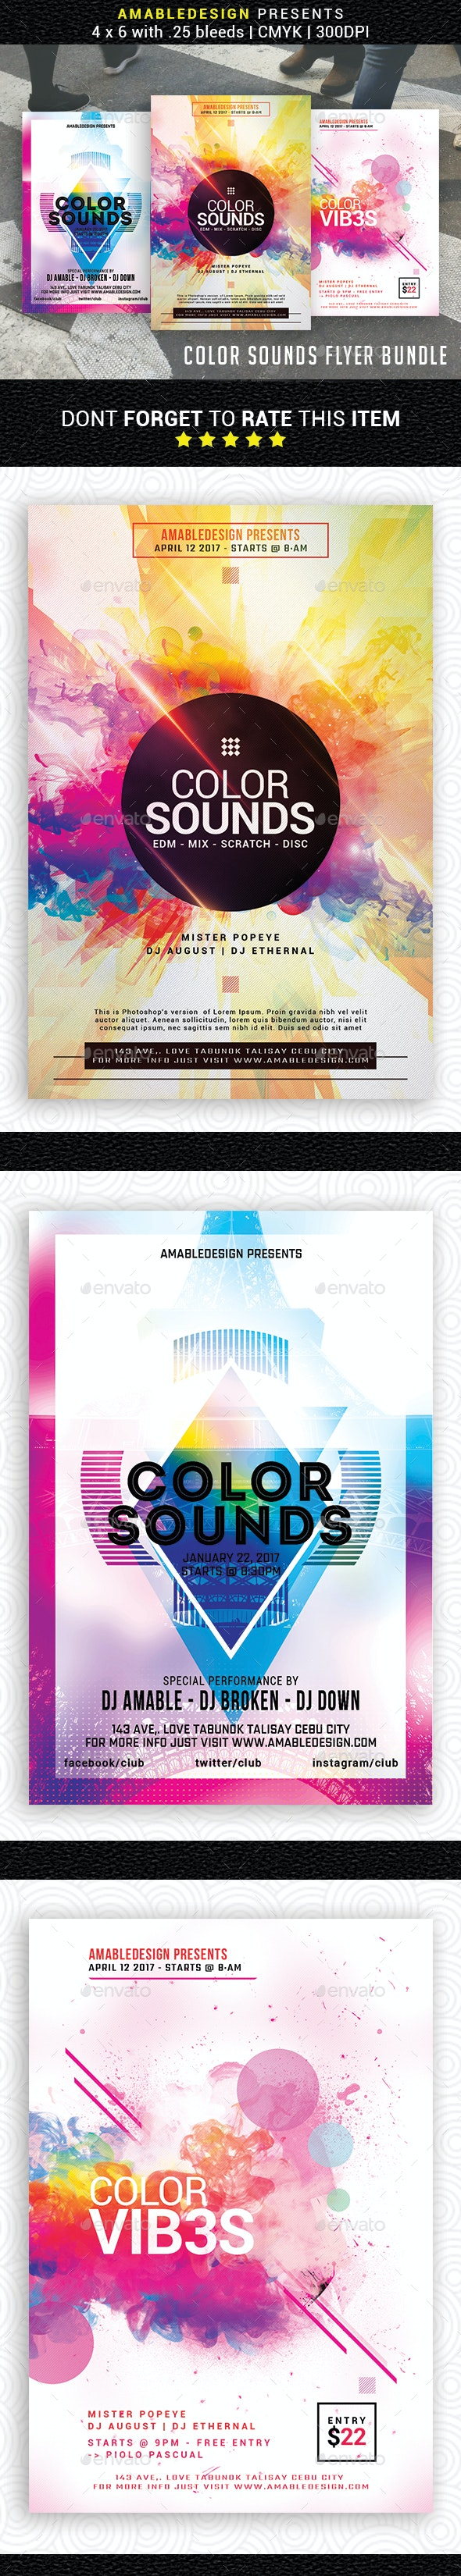 3 in 1 Color Sounds Flyer/Poster Bundle - Events Flyers